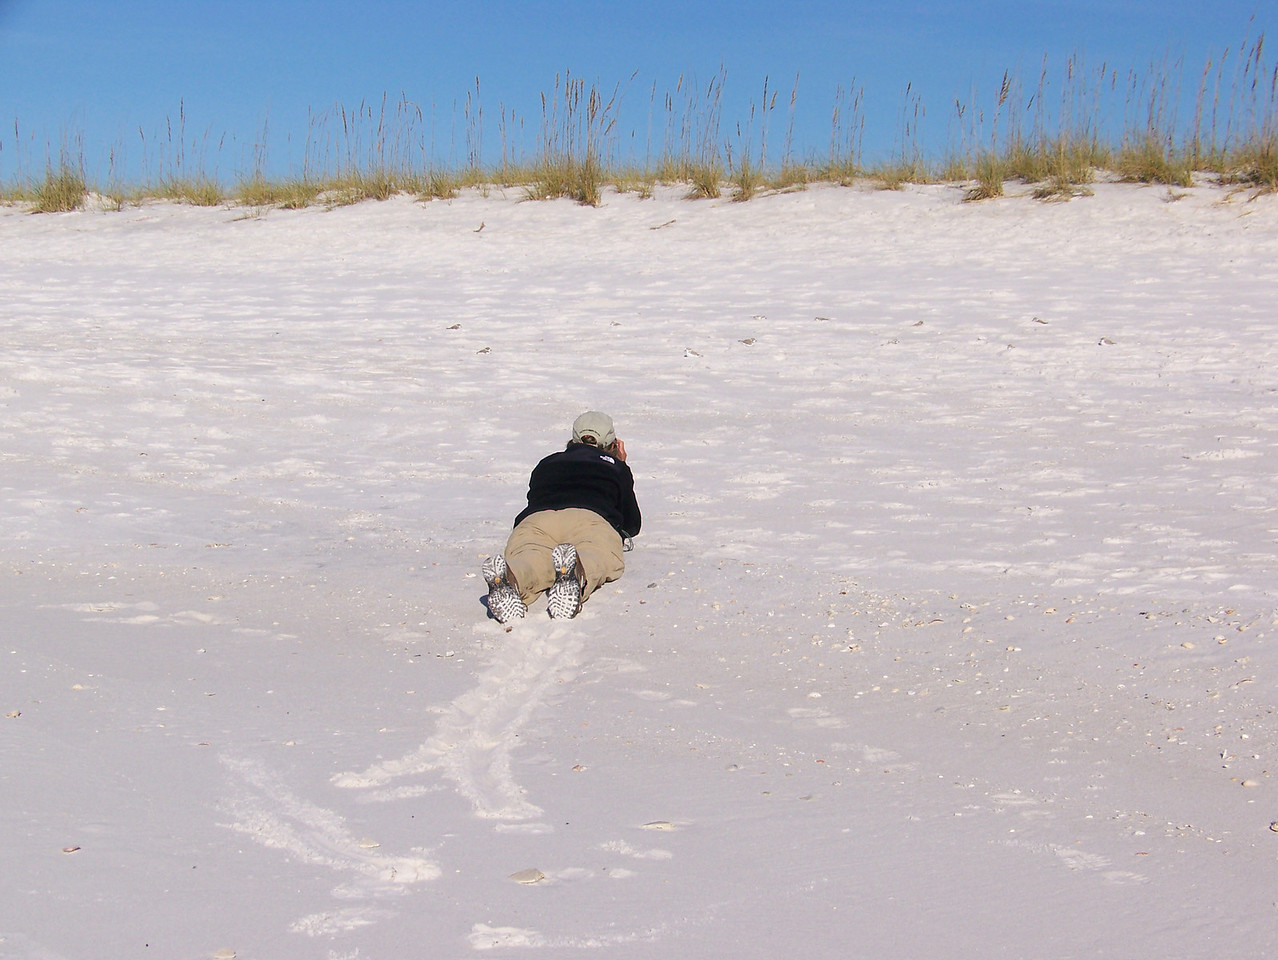 Linda taking pictures of snowy plovers on Navarre Beach